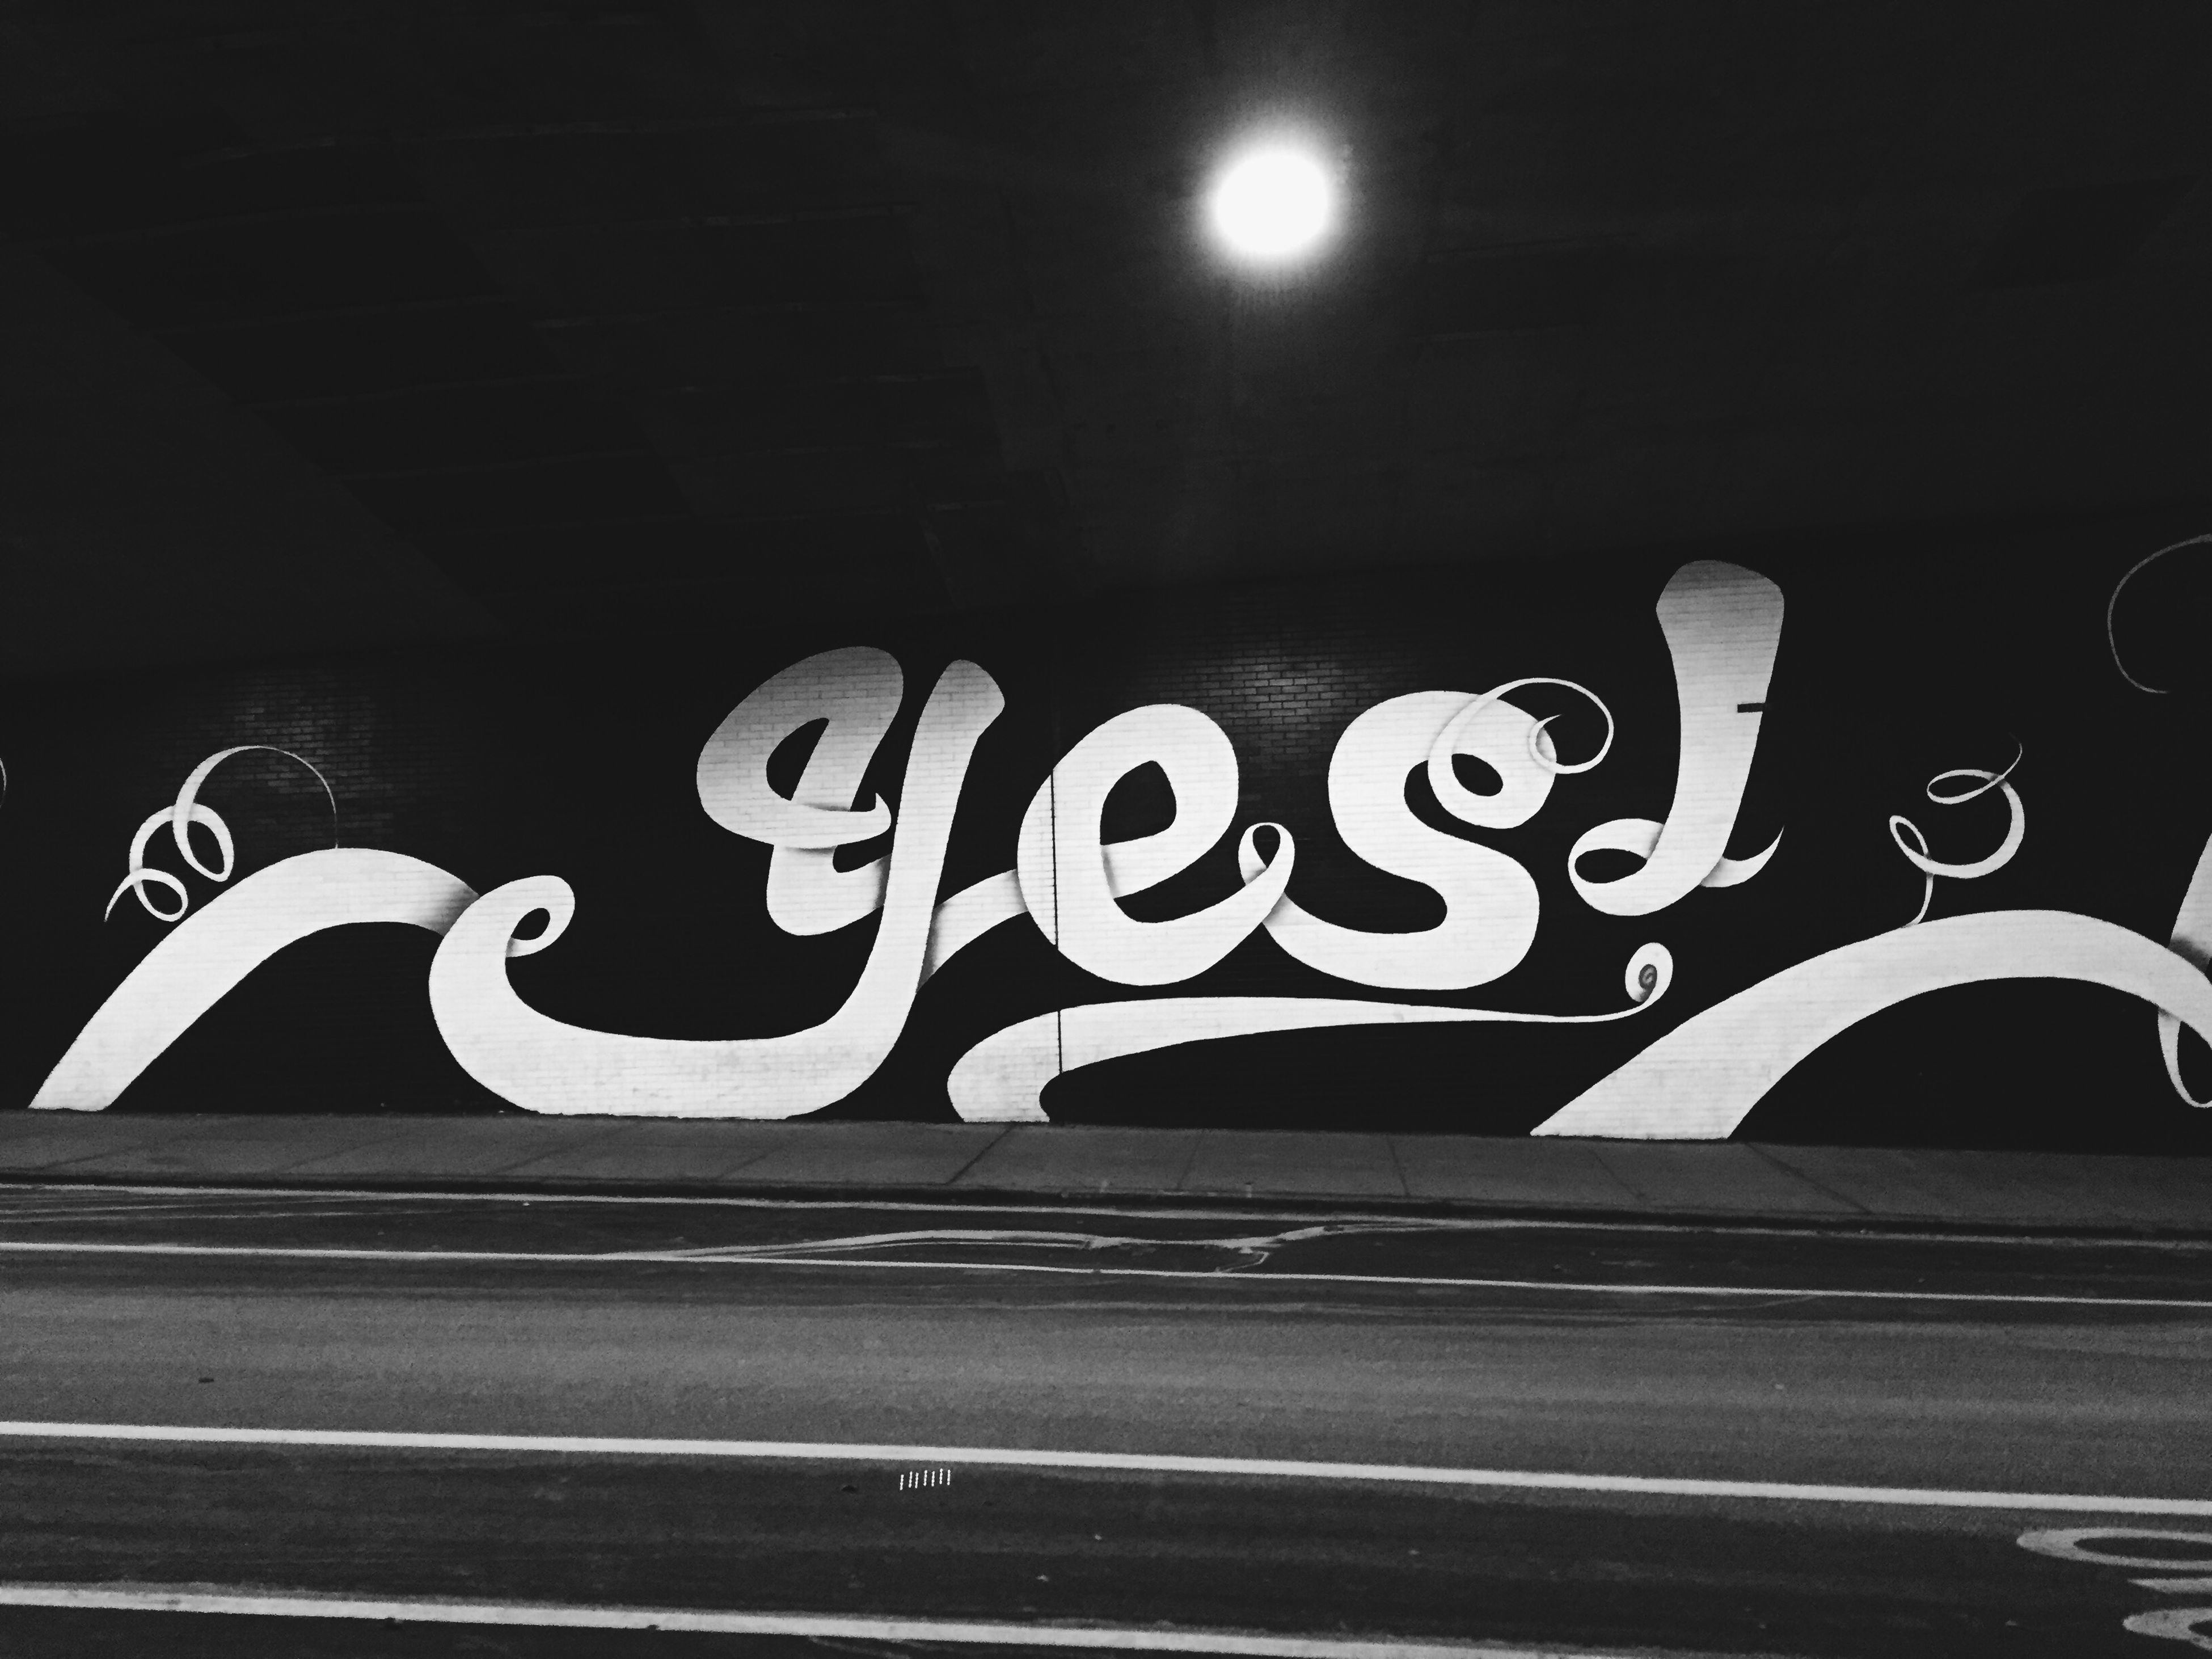 text, western script, illuminated, communication, graffiti, sign, road marking, night, capital letter, transportation, information sign, wall - building feature, street, built structure, road, guidance, arrow symbol, the way forward, architecture, information